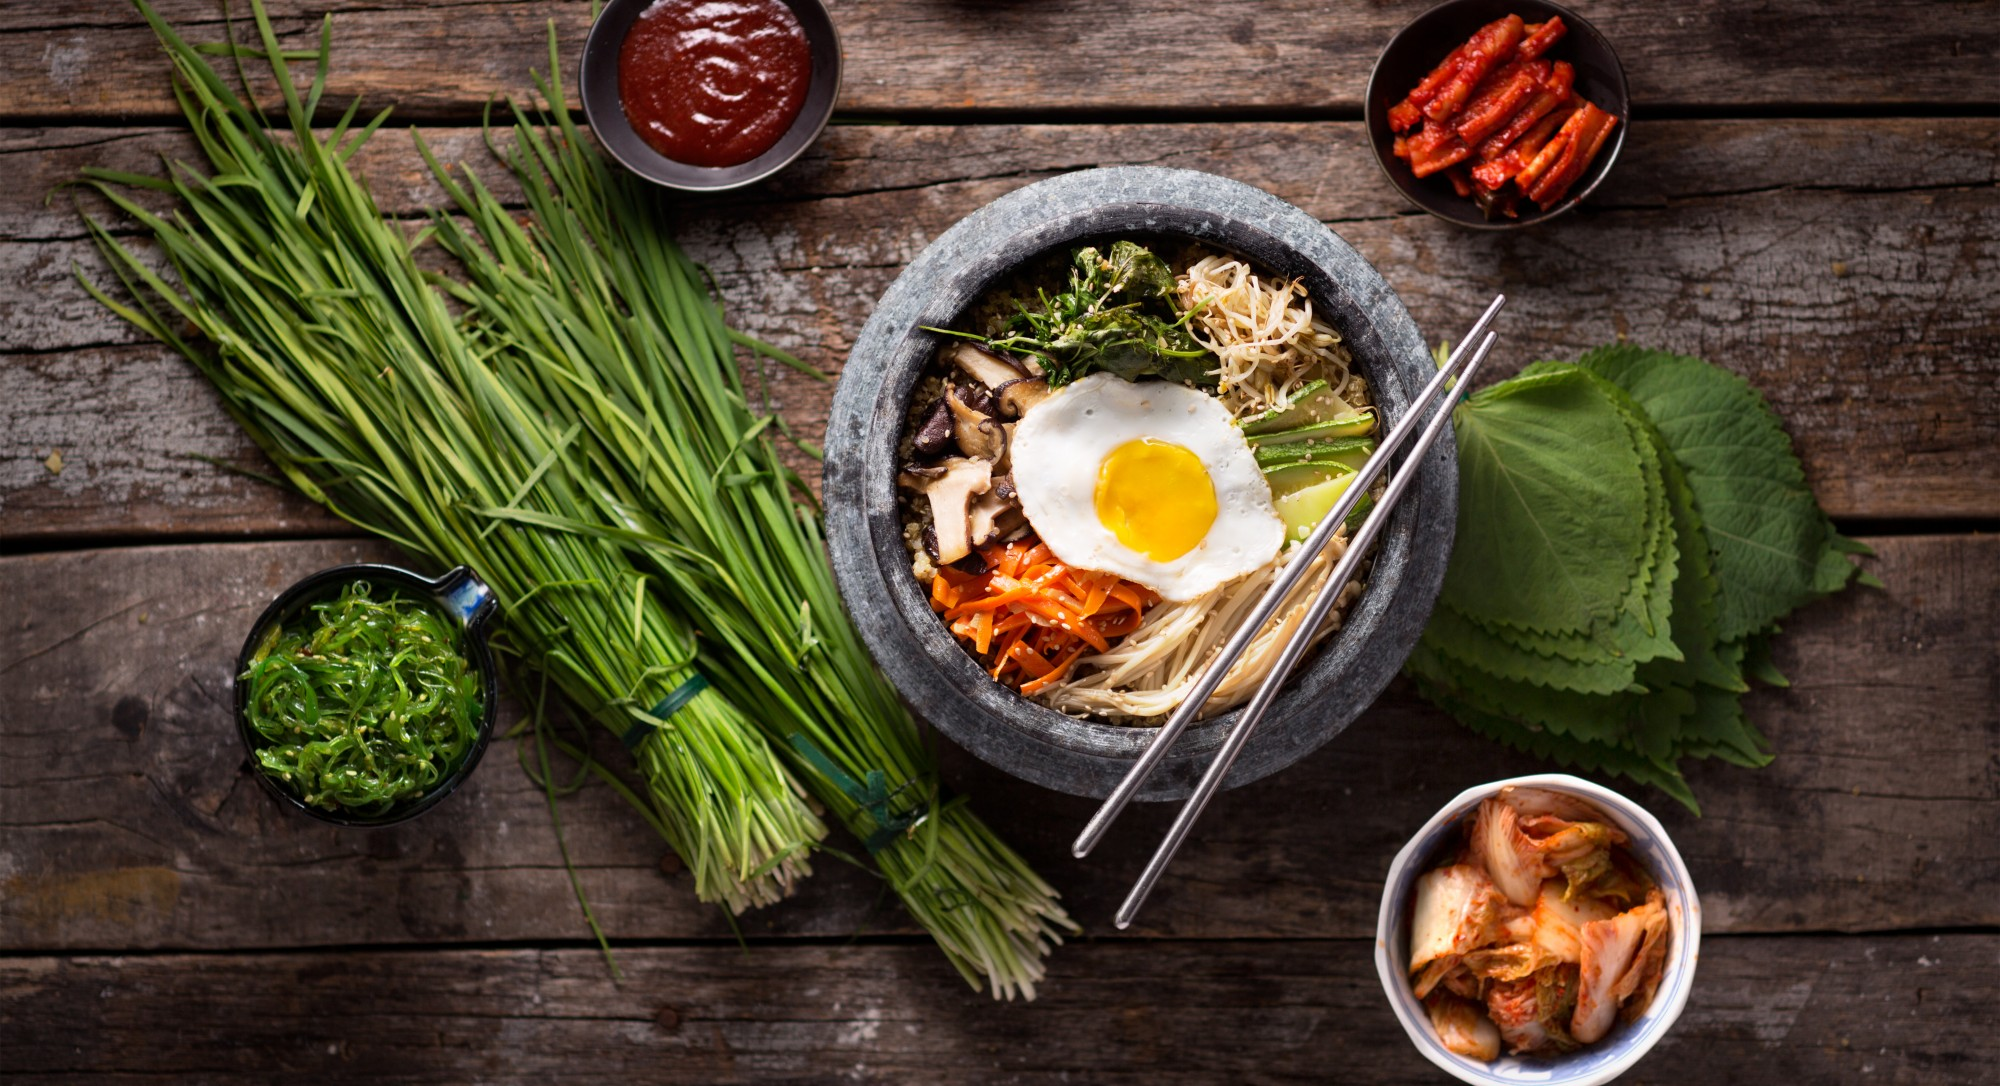 Energy Up! A Classic Korean Bowl Gets a Powerful Protein Punch